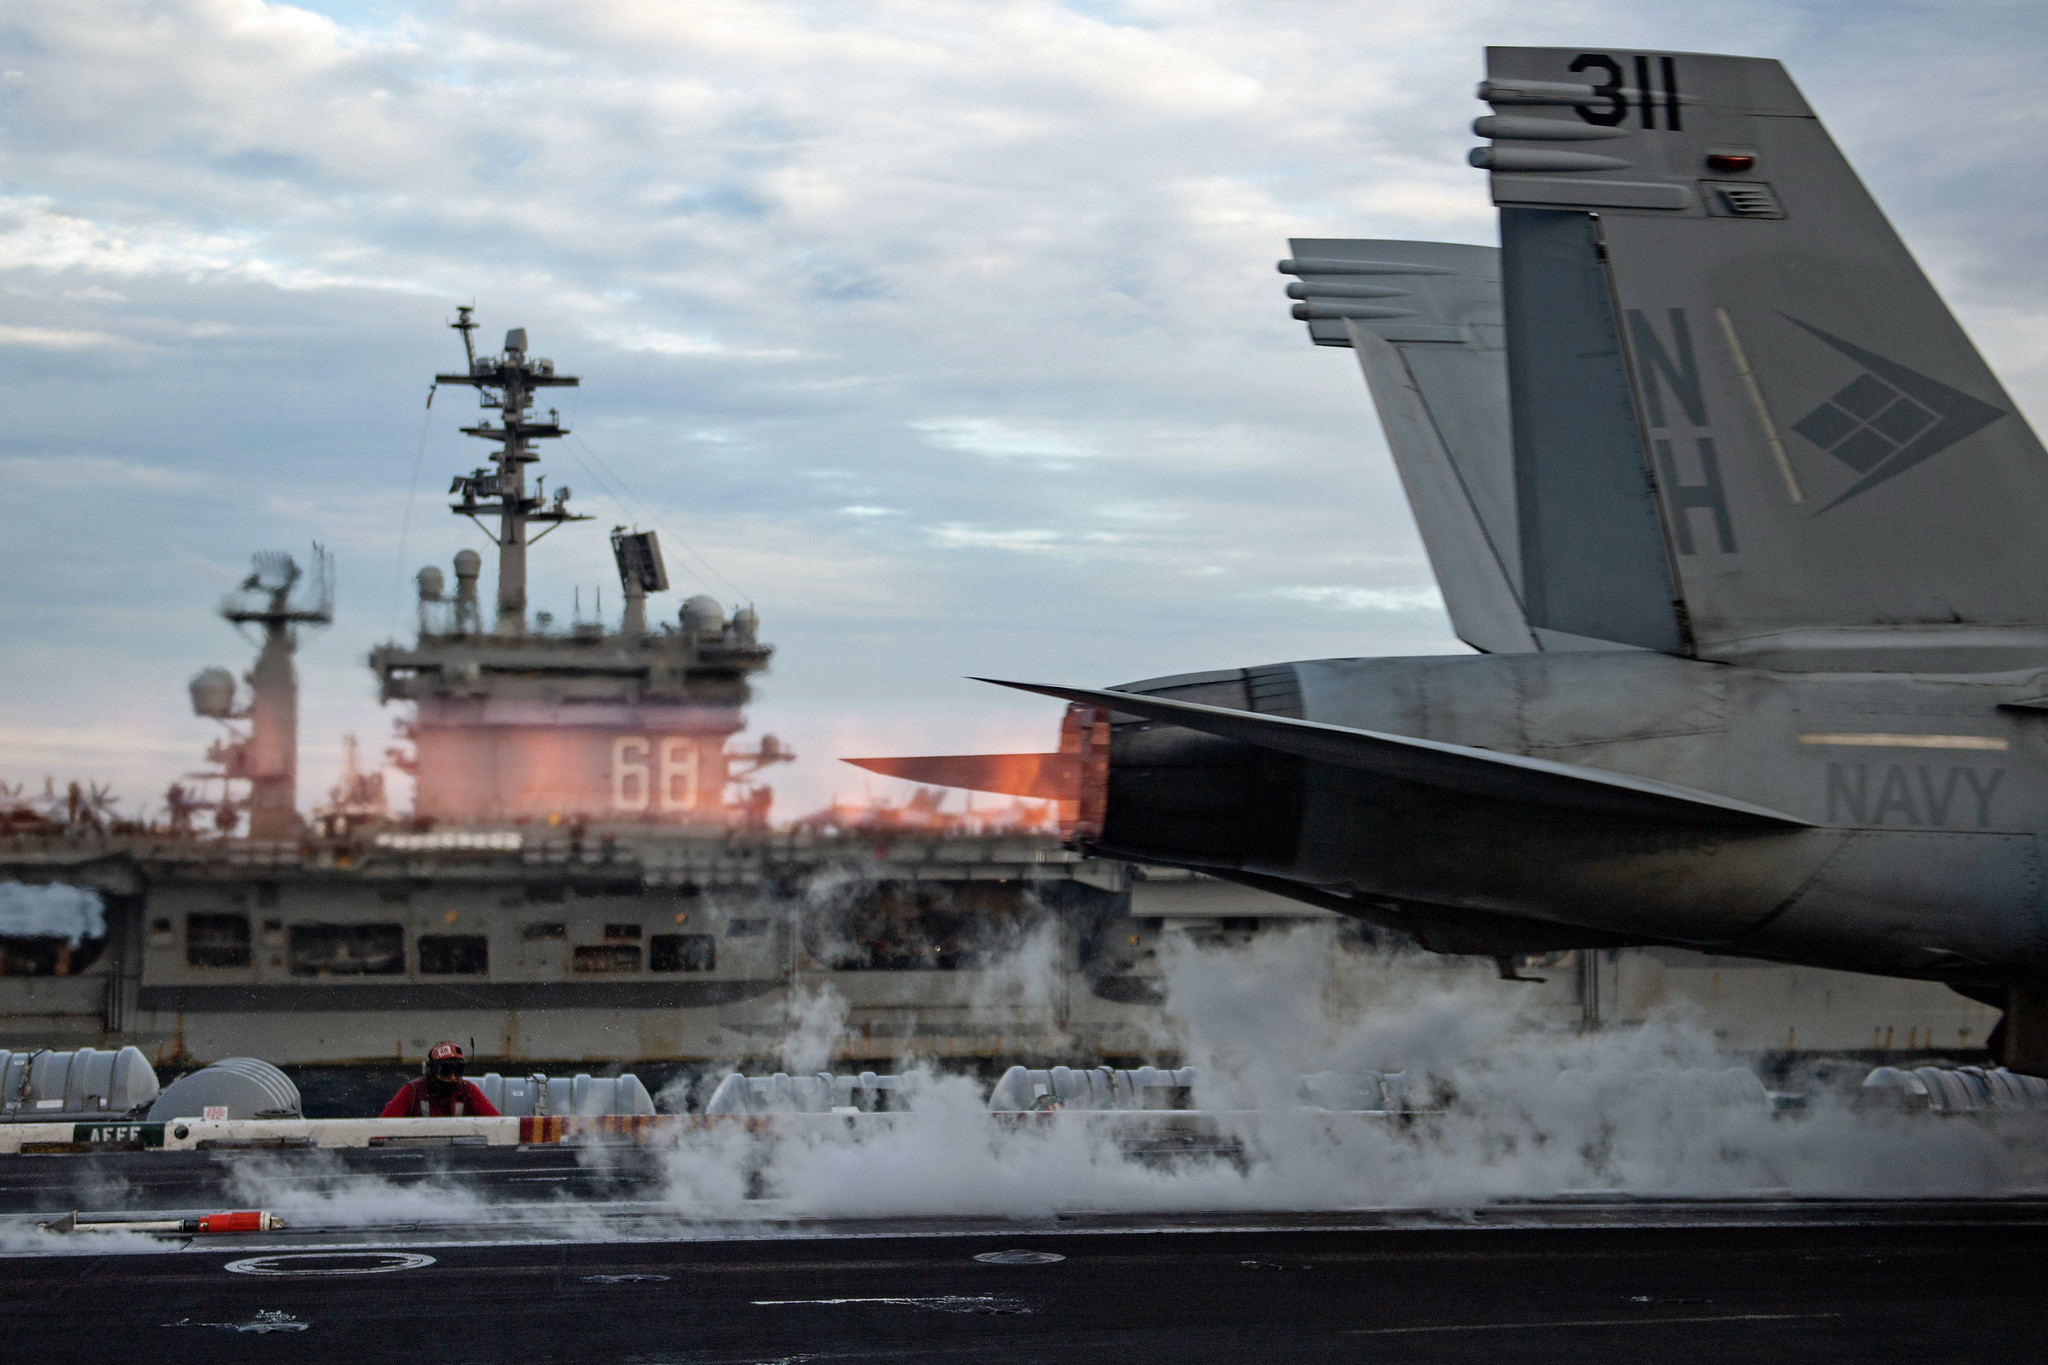 An F/A-18E Super Hornet launches from the flight deck of USS Theodore Roosevelt (CVN 71) while conducting dual-carrier operations with the Nimitz Carrier Strike Group in the South China Sea on Feb. 9, 2021. (MC2 Zachary Wheeler/Navy)